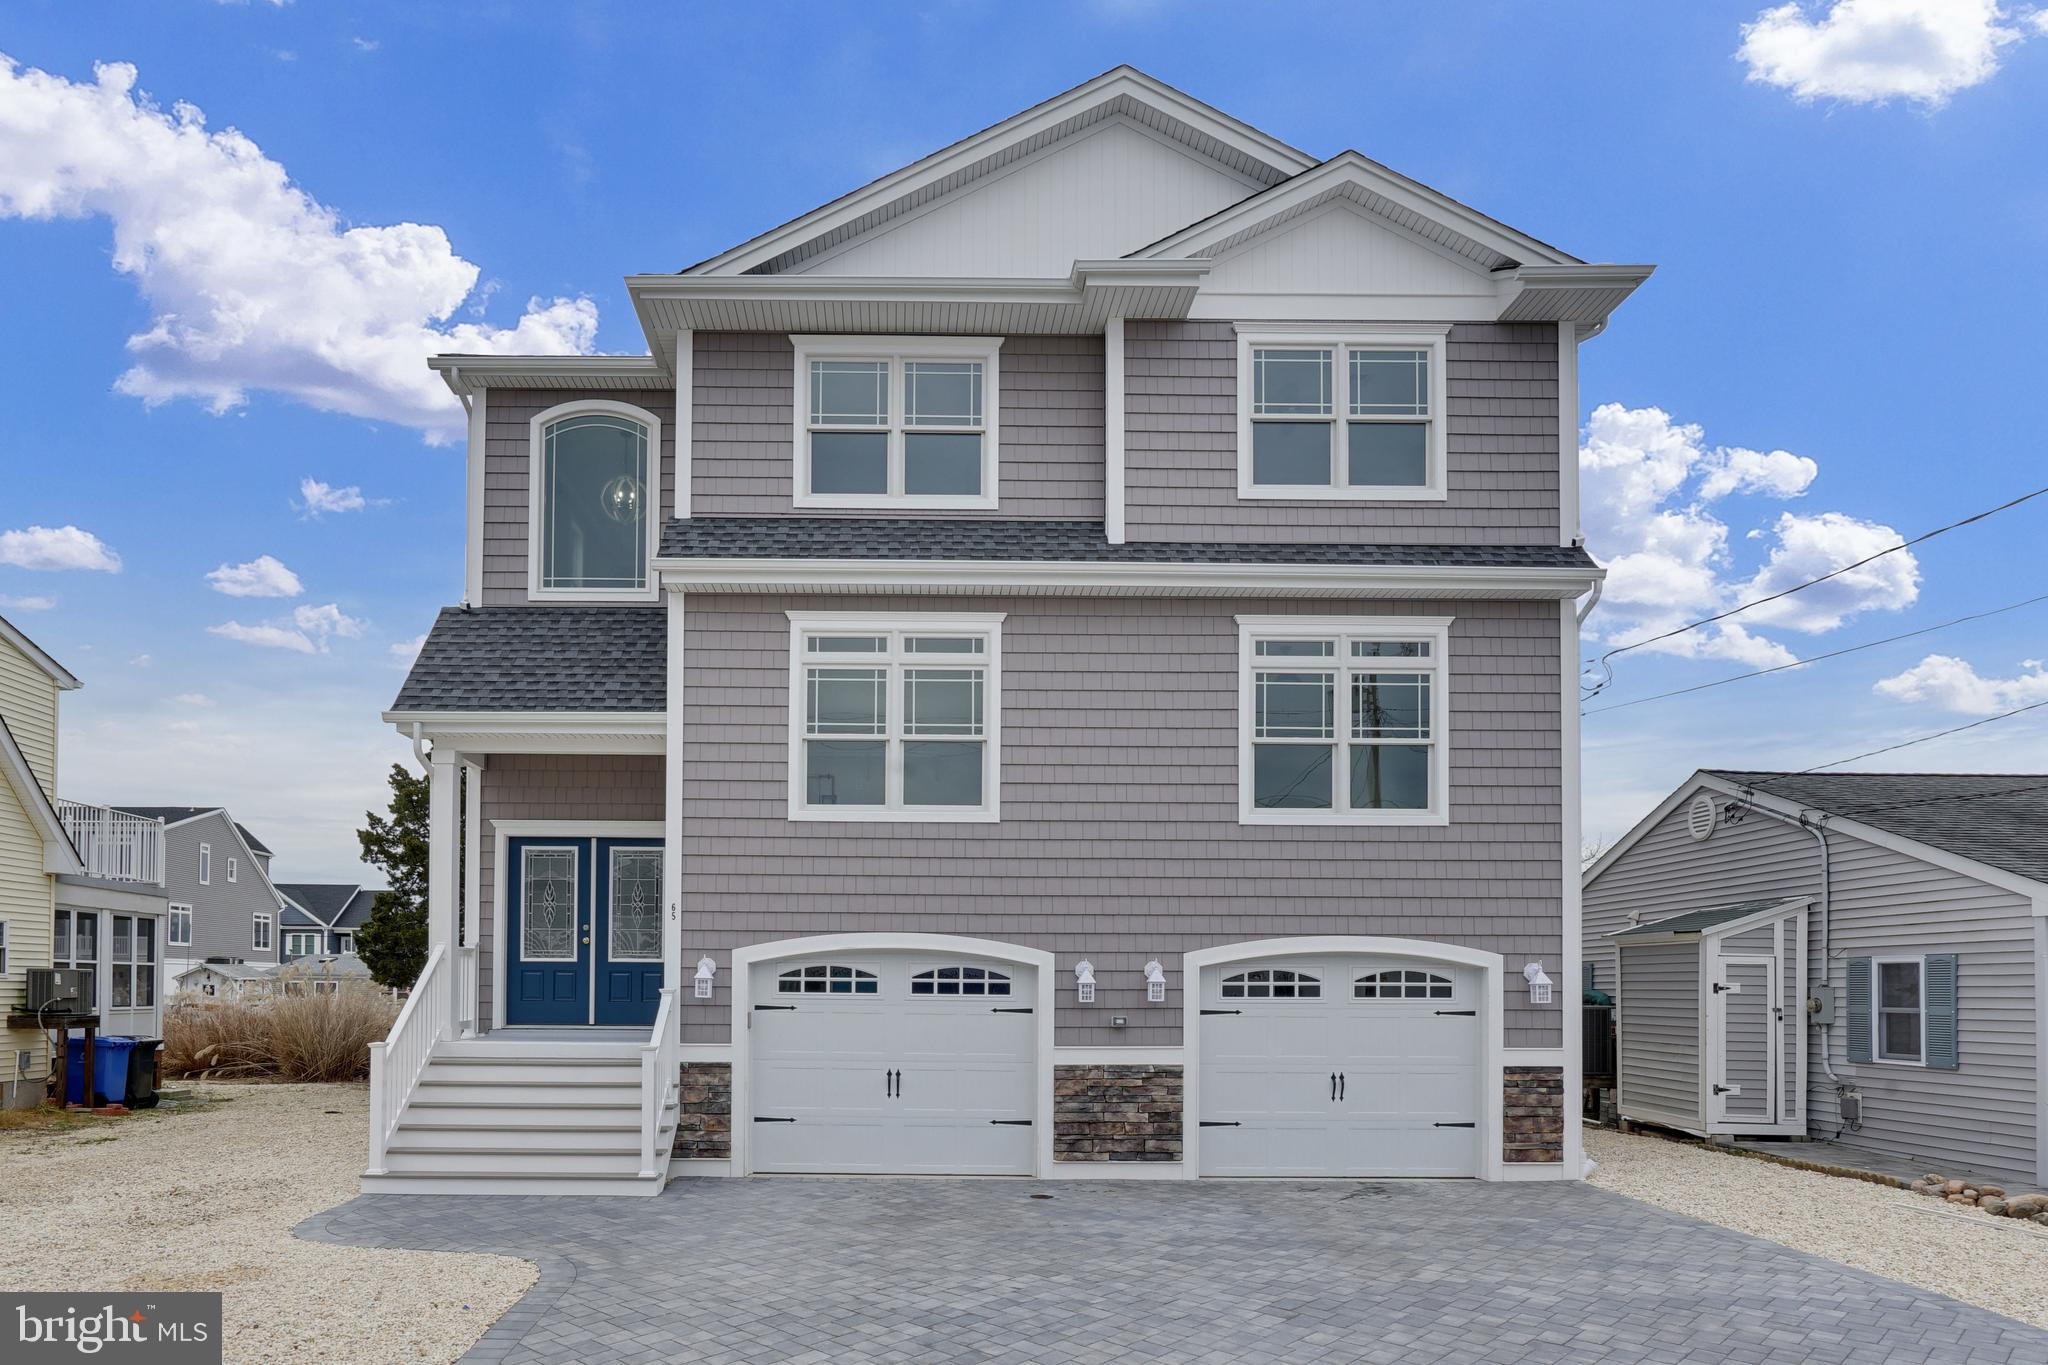 20 Ralph Lane, Manahawkin, NJ 08050